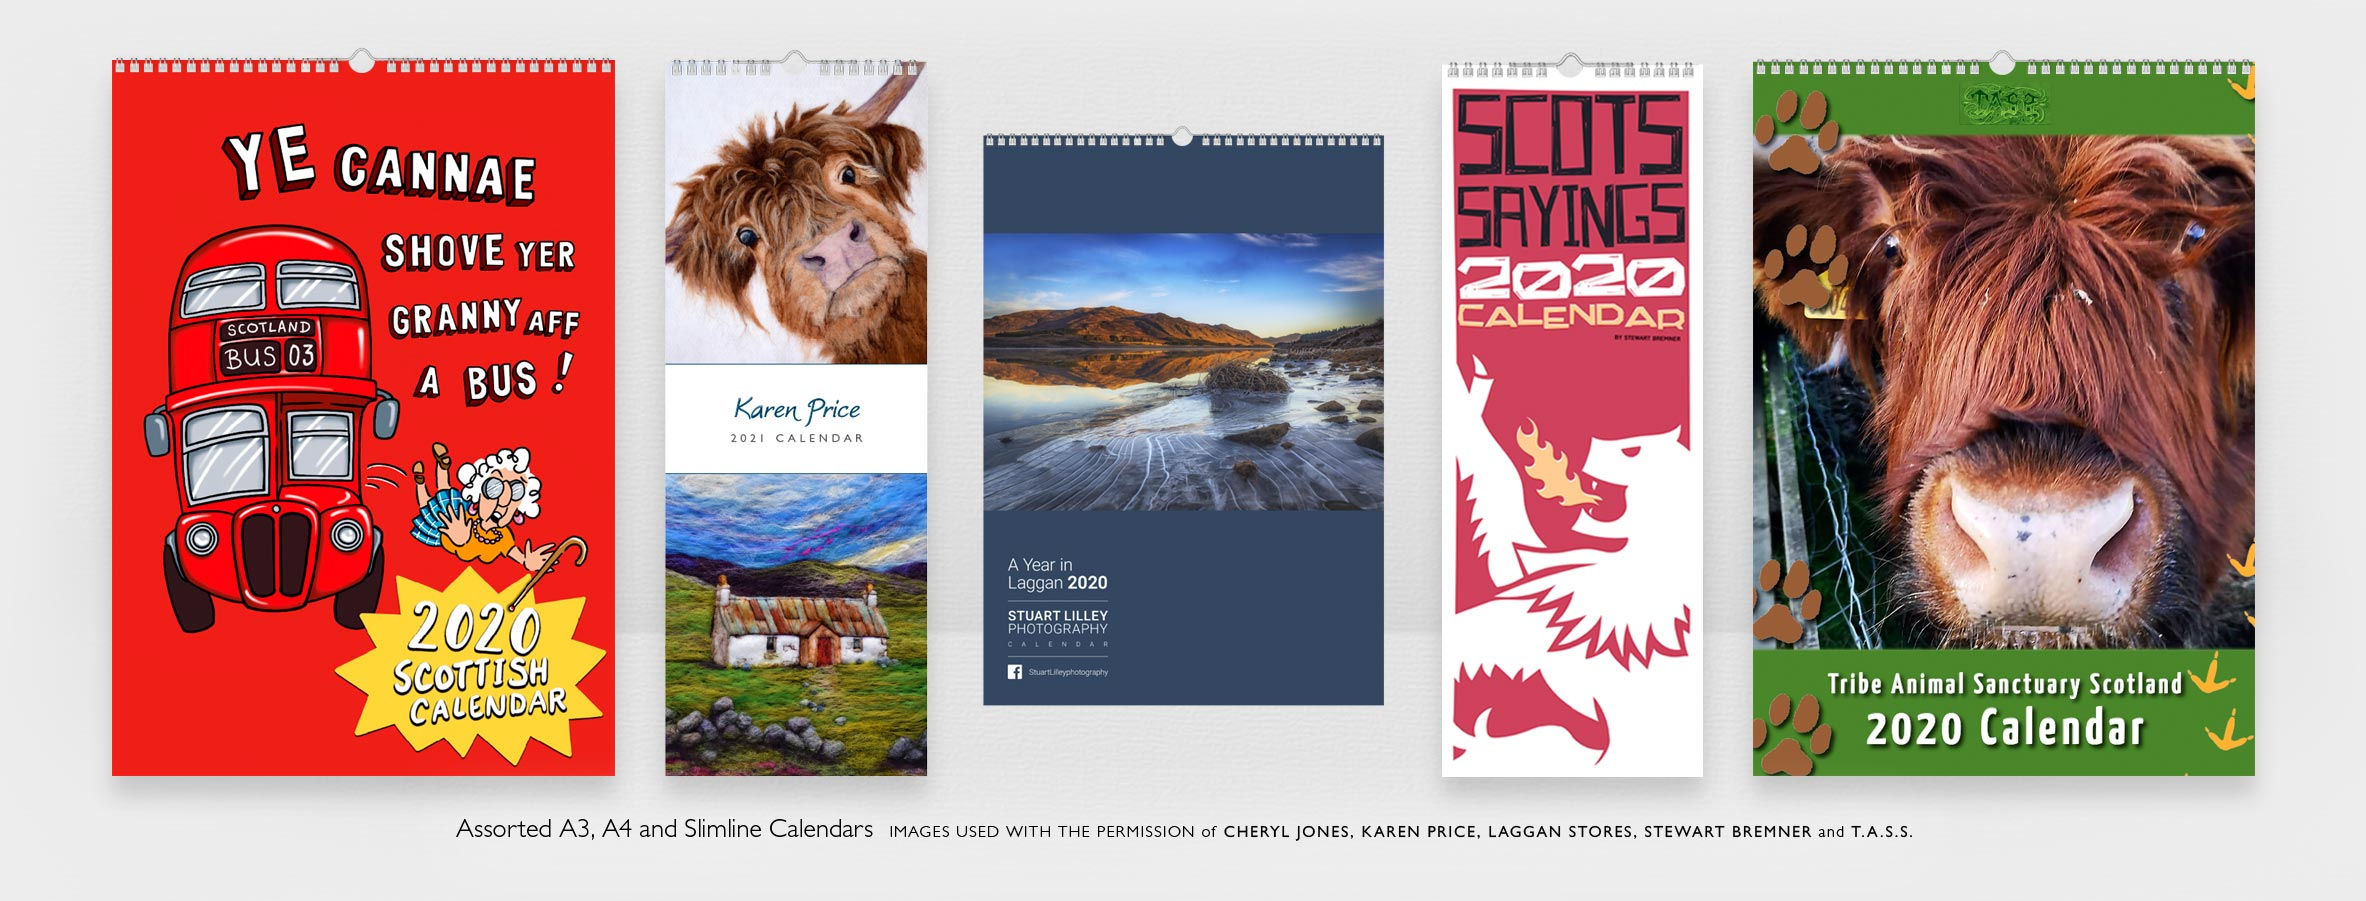 5 Calendars in different sizes all depicting artwork and illustrations from different Scottish artists